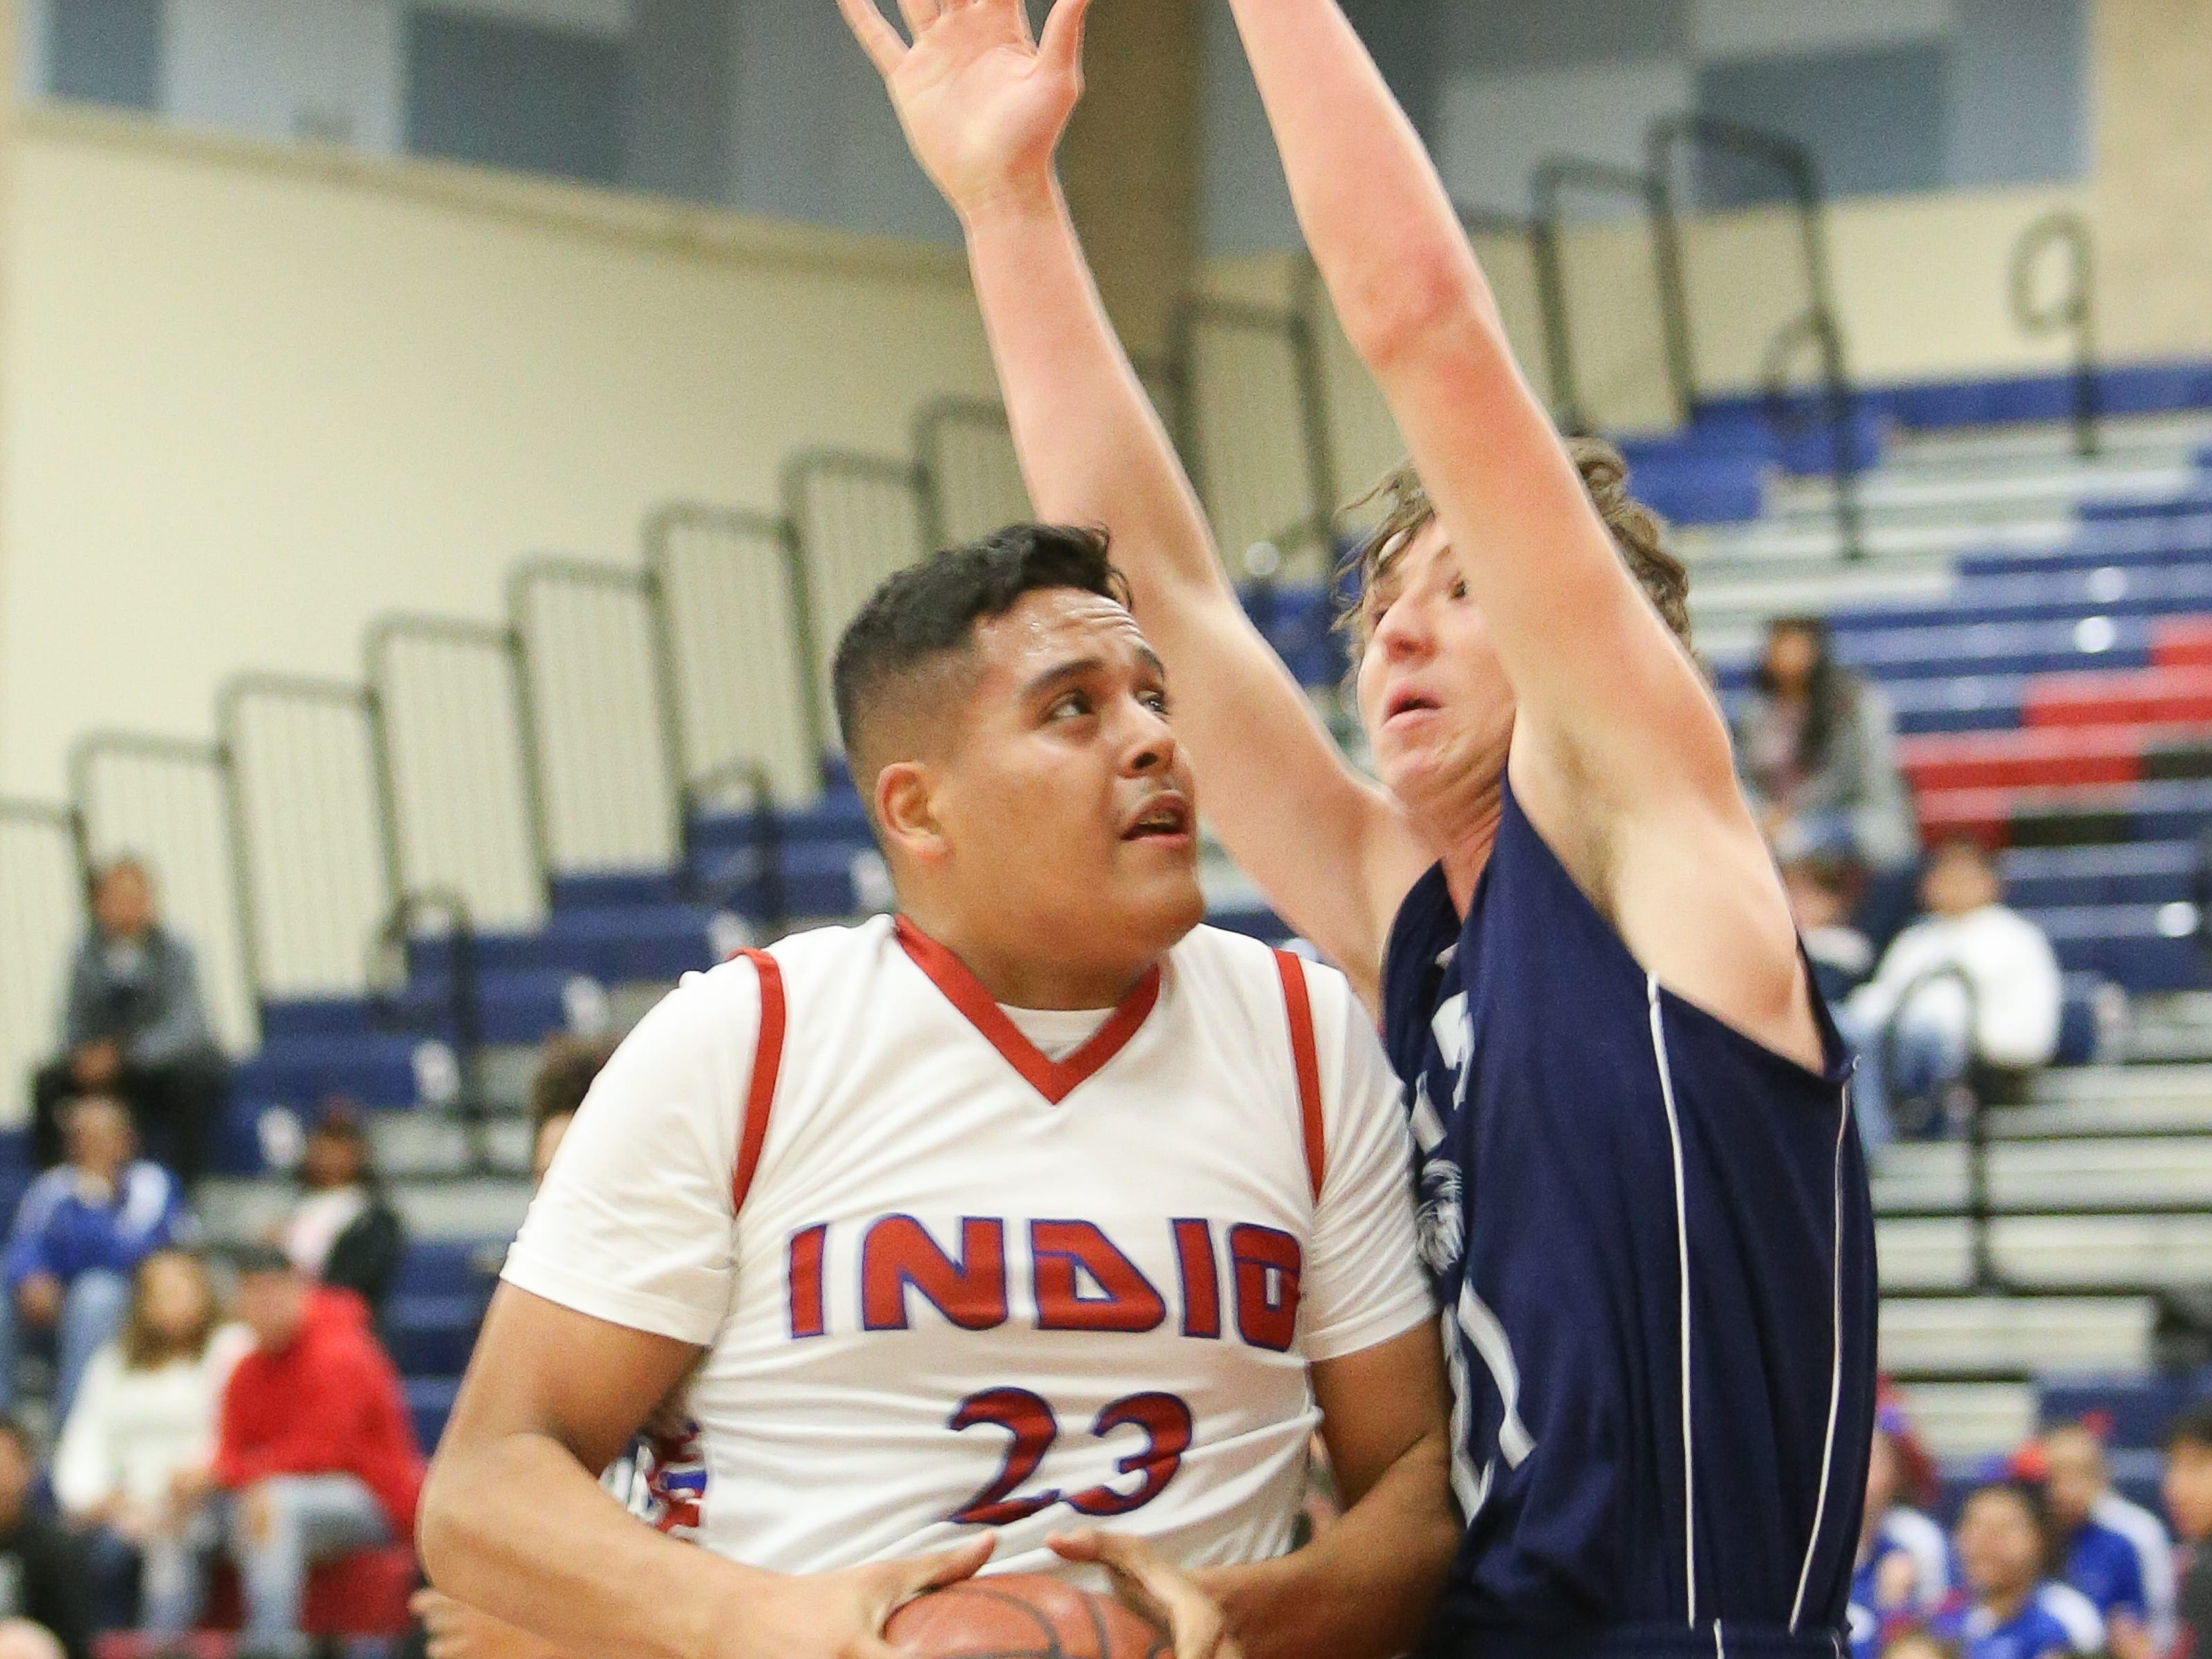 The Indio varsity basketball team won Tuesday's home conference game against Desert Hot Springs (CA) by a score of 64-59.